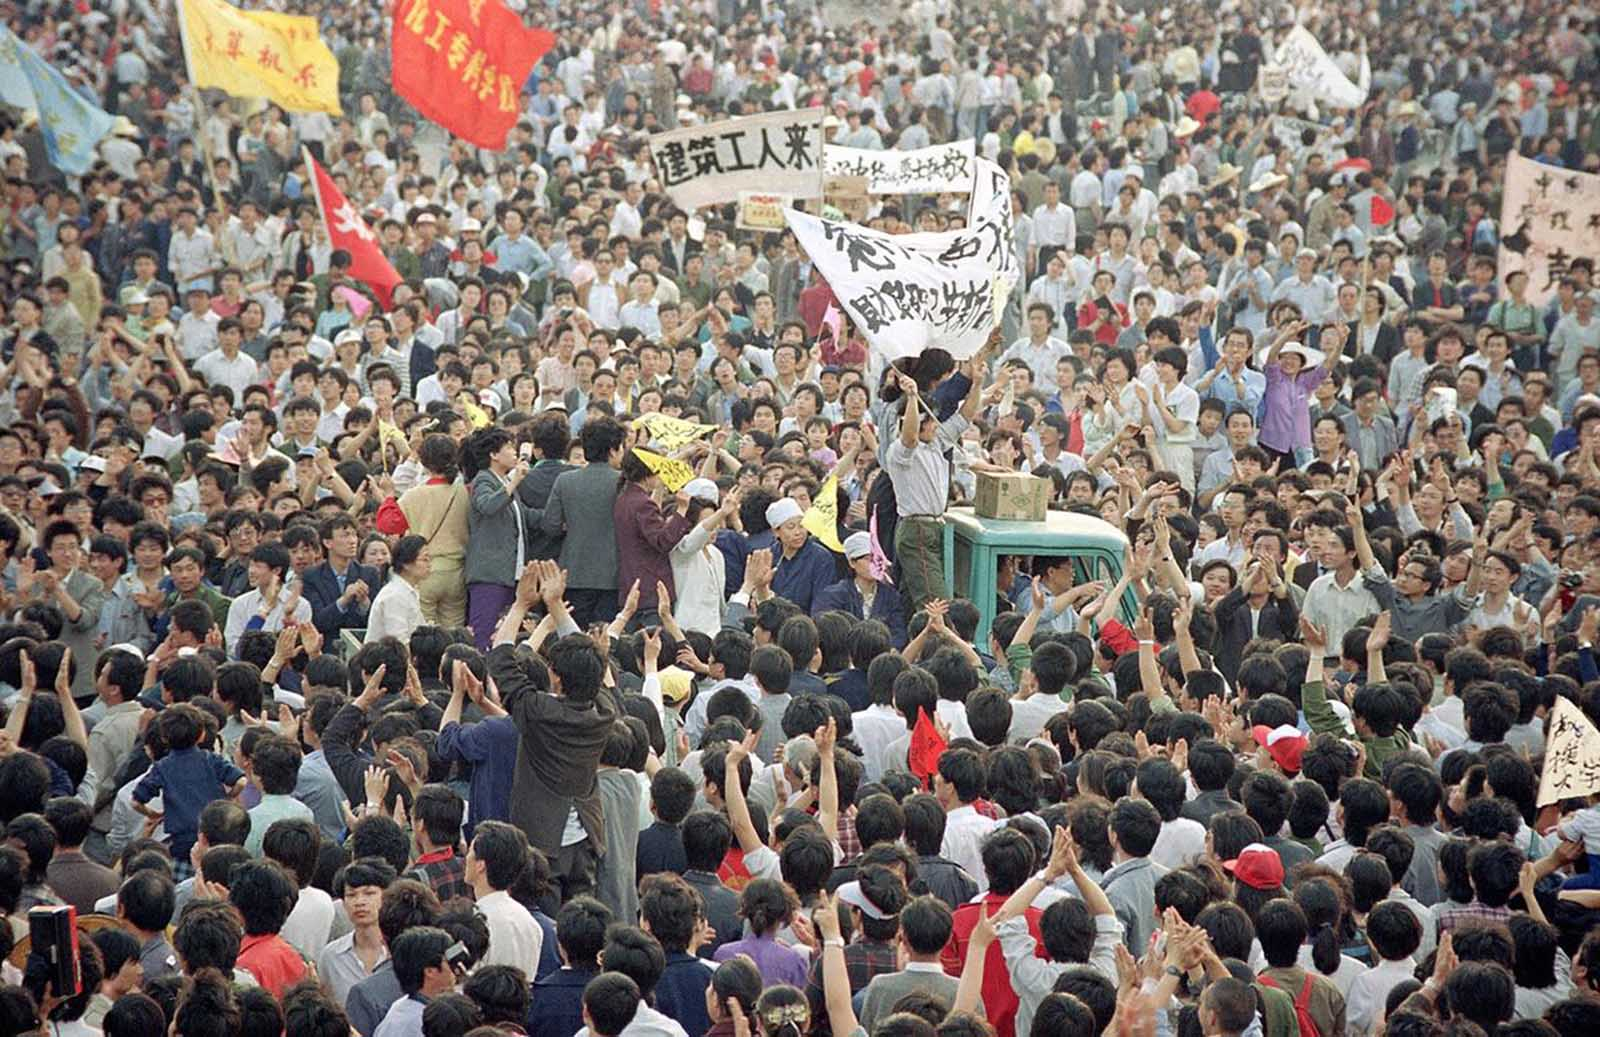 A truck is almost buried in people as it makes its way through the crowd of thousands gathered in Tiananmen Square in a pro-democracy rally, on May 17, 1989.